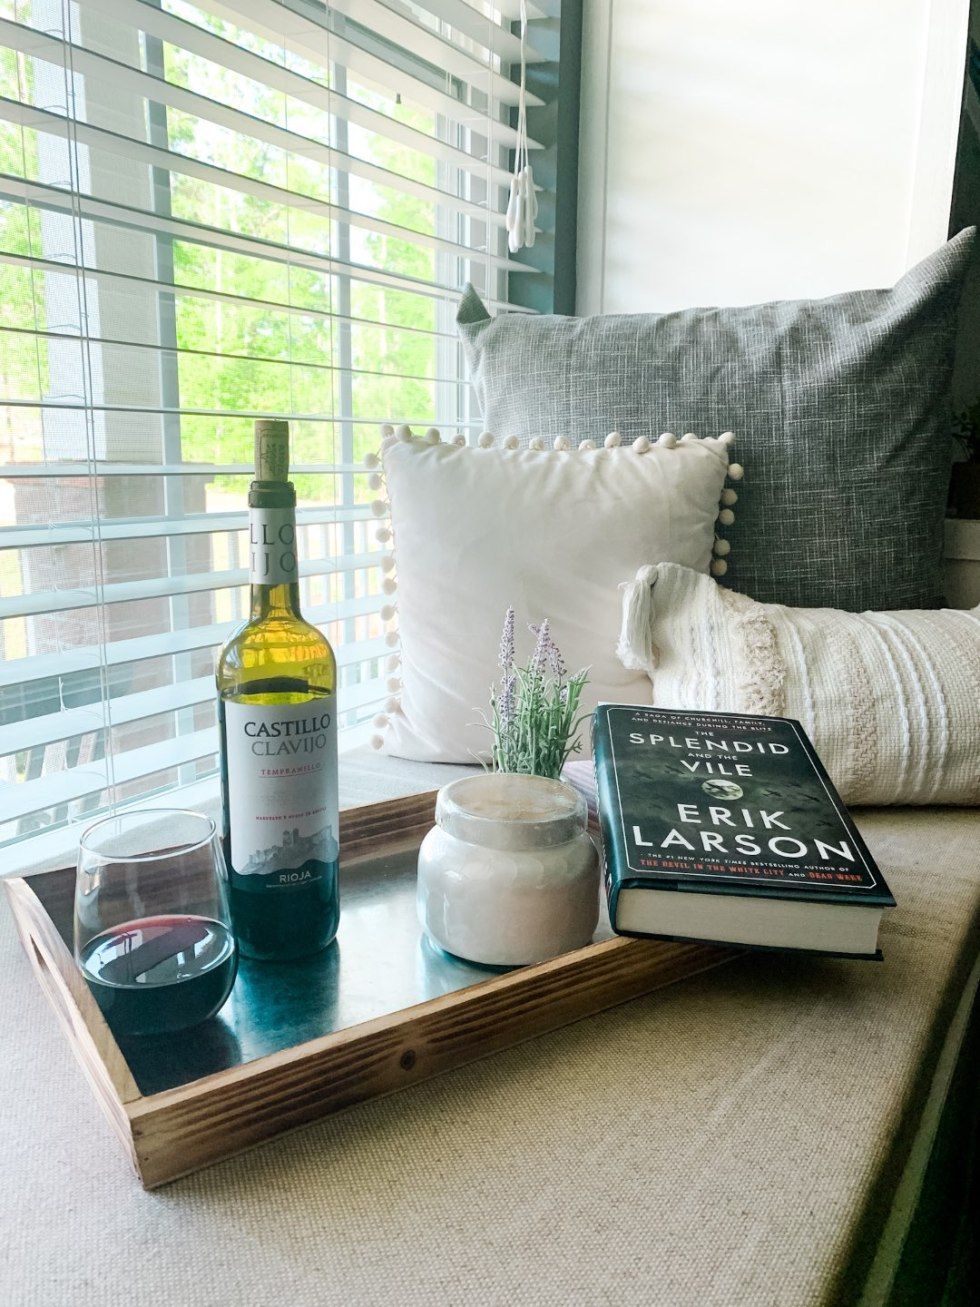 Top 10 Best Wines by popular N.C. lifestyle blog, I'm Fixin' To: image of a bottle of Castillo Clavijo wine on a window bench next to a candle and a book.